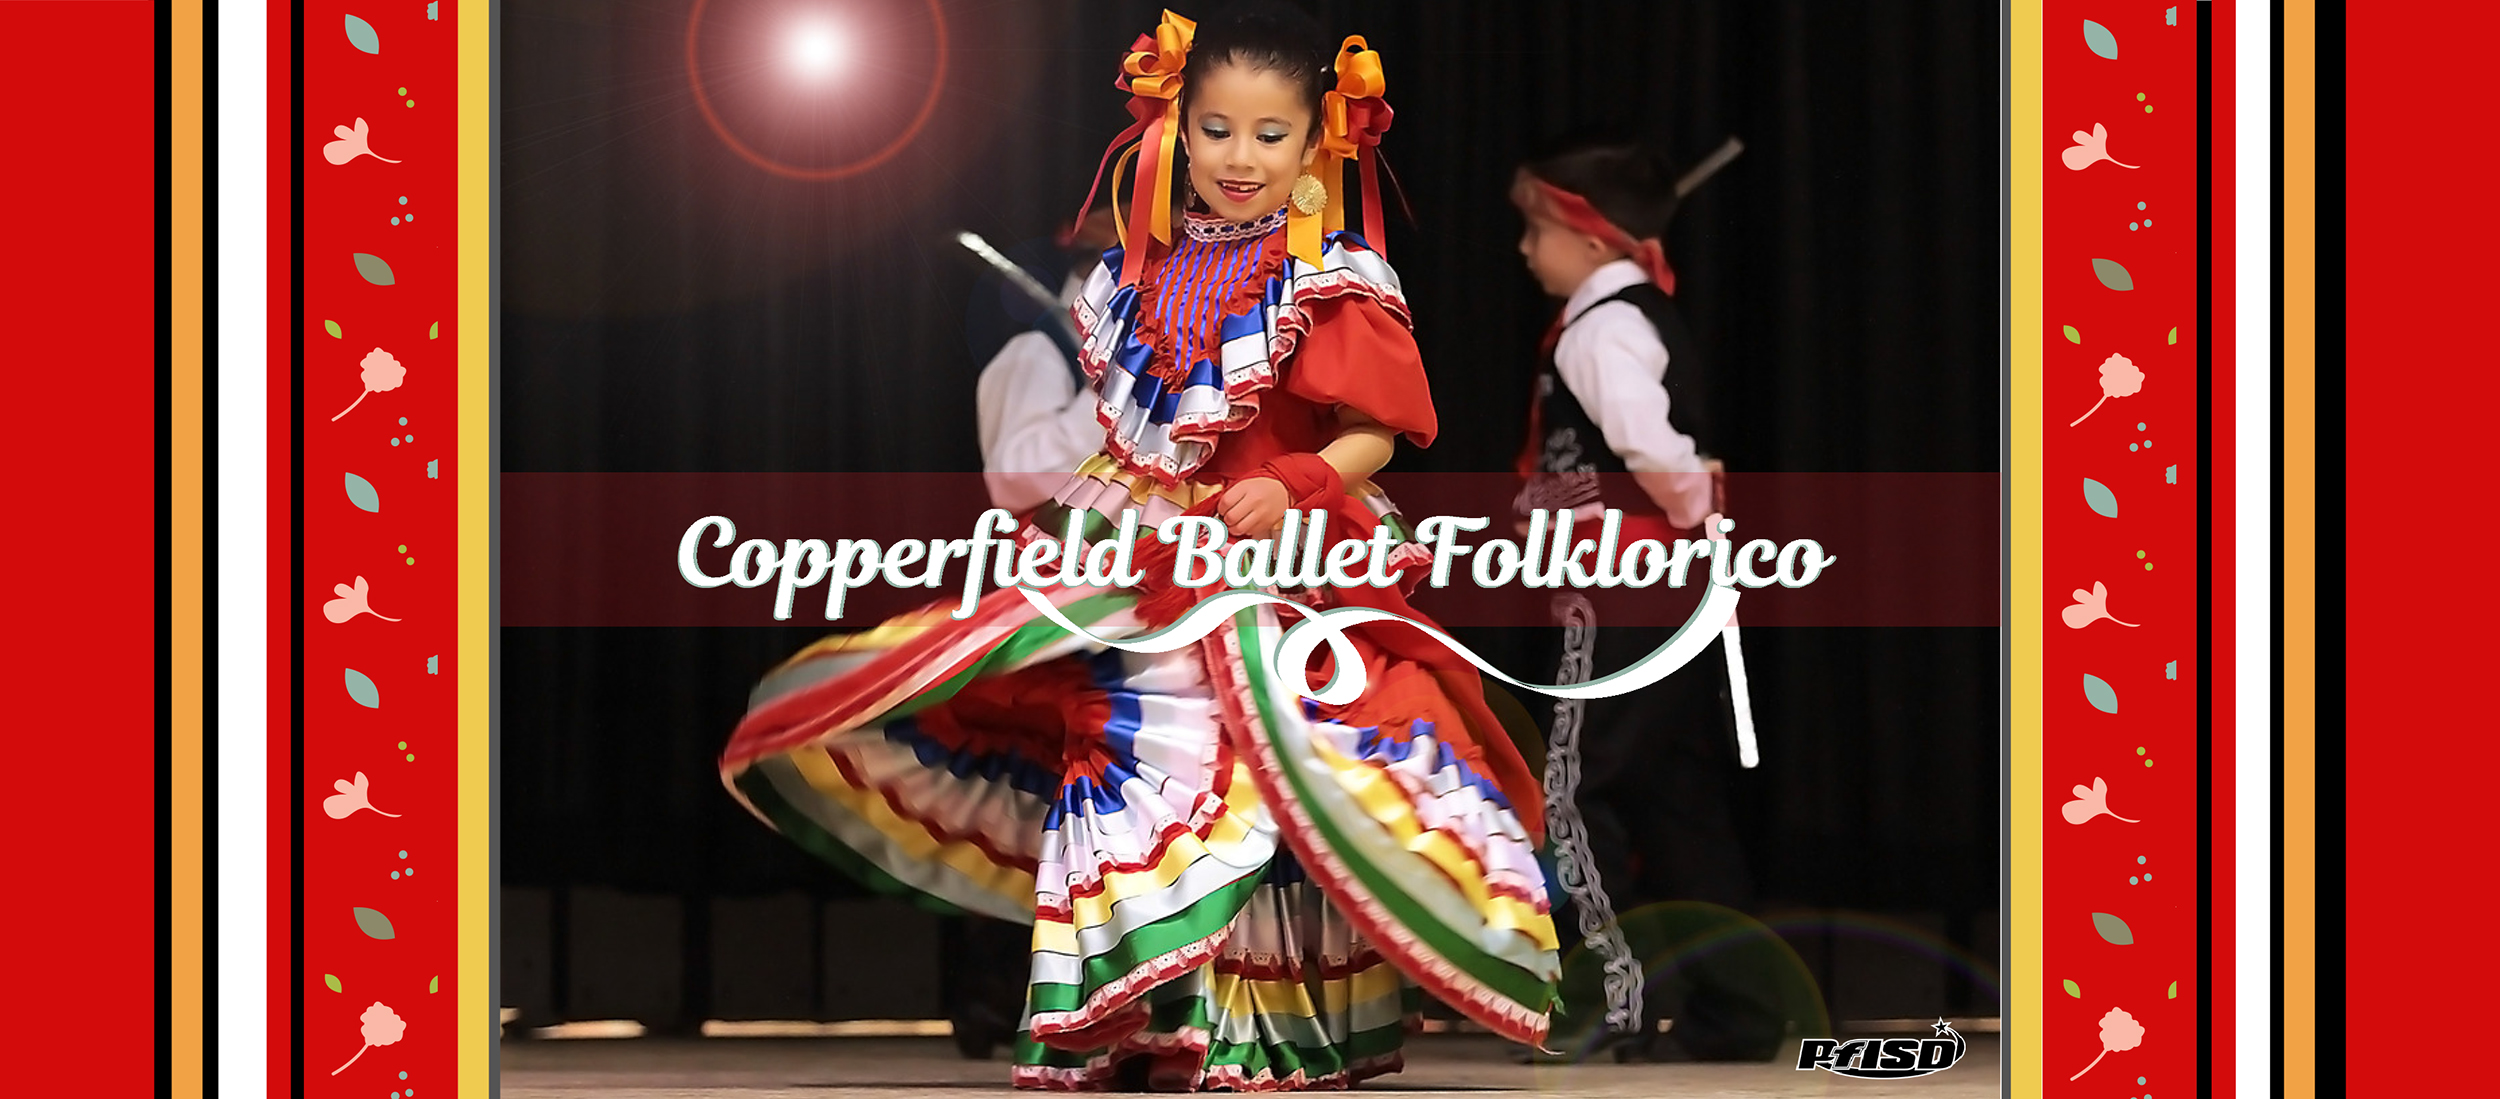 Copperfield Ballet Folklorico